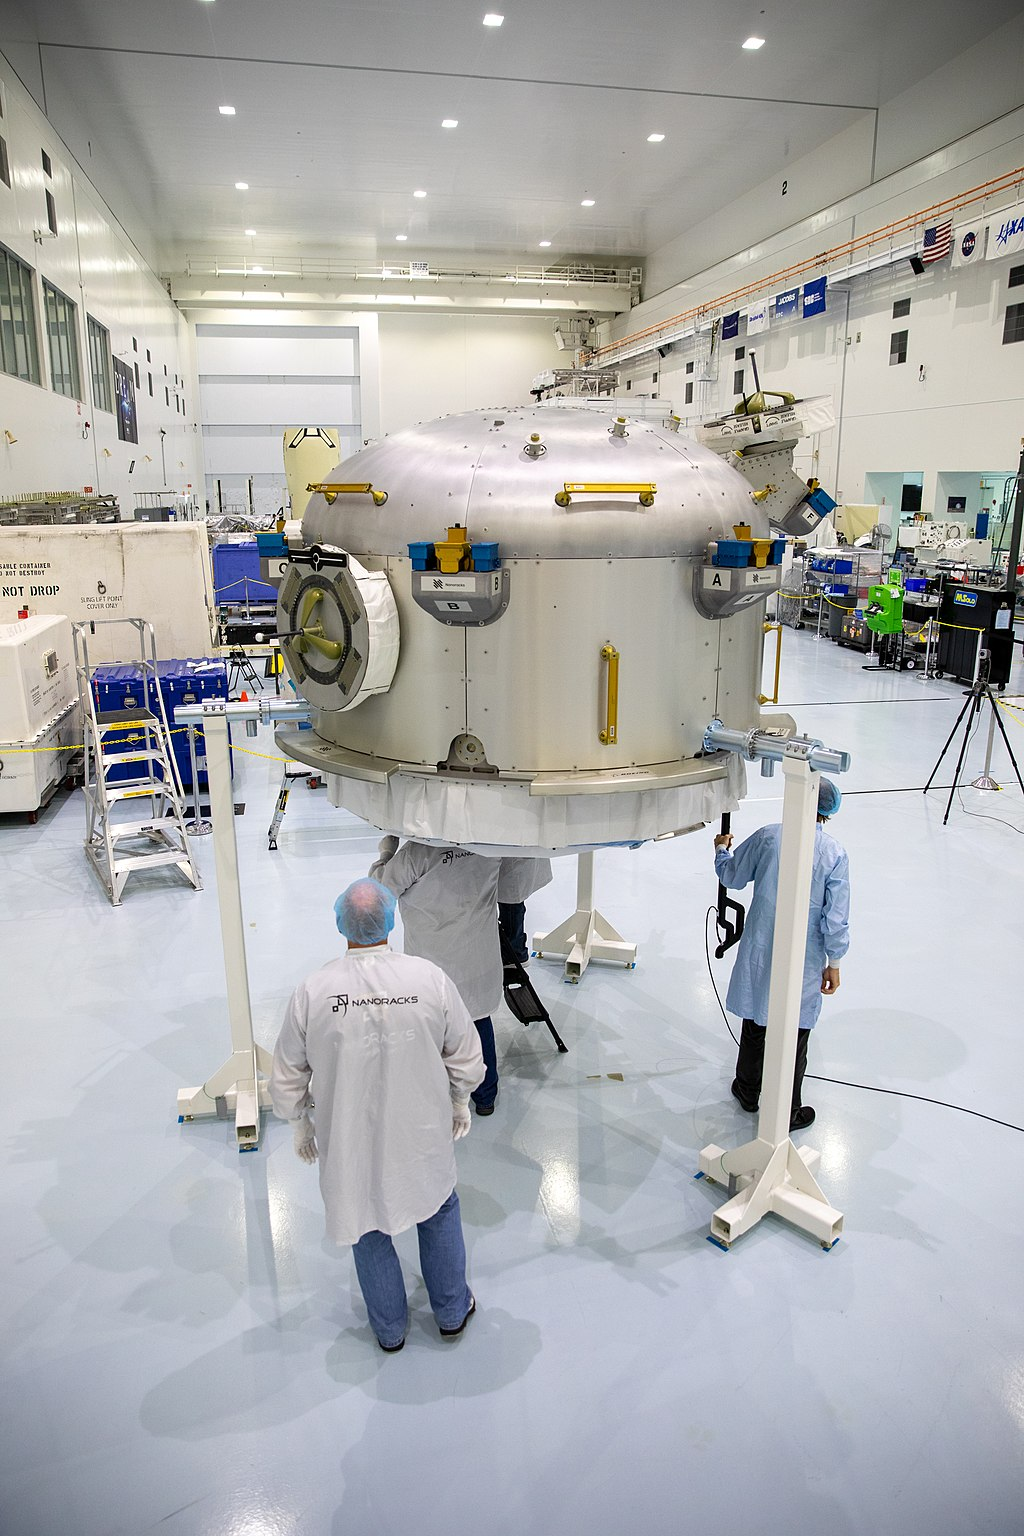 CRS-21 payload